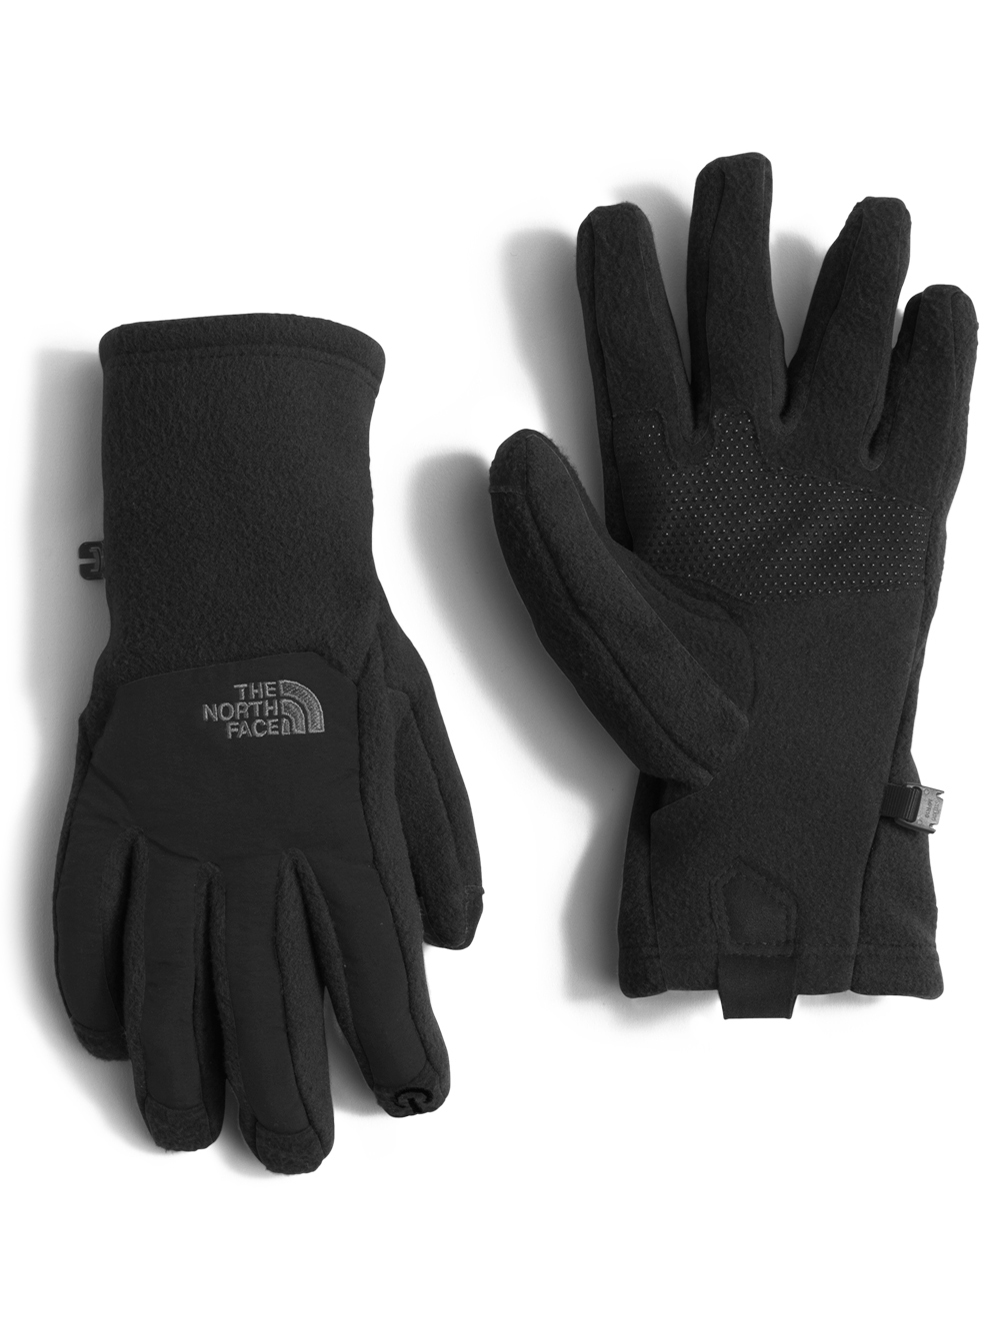 The North Face Women's Denali Etip Gloves (Sizes XS - L)